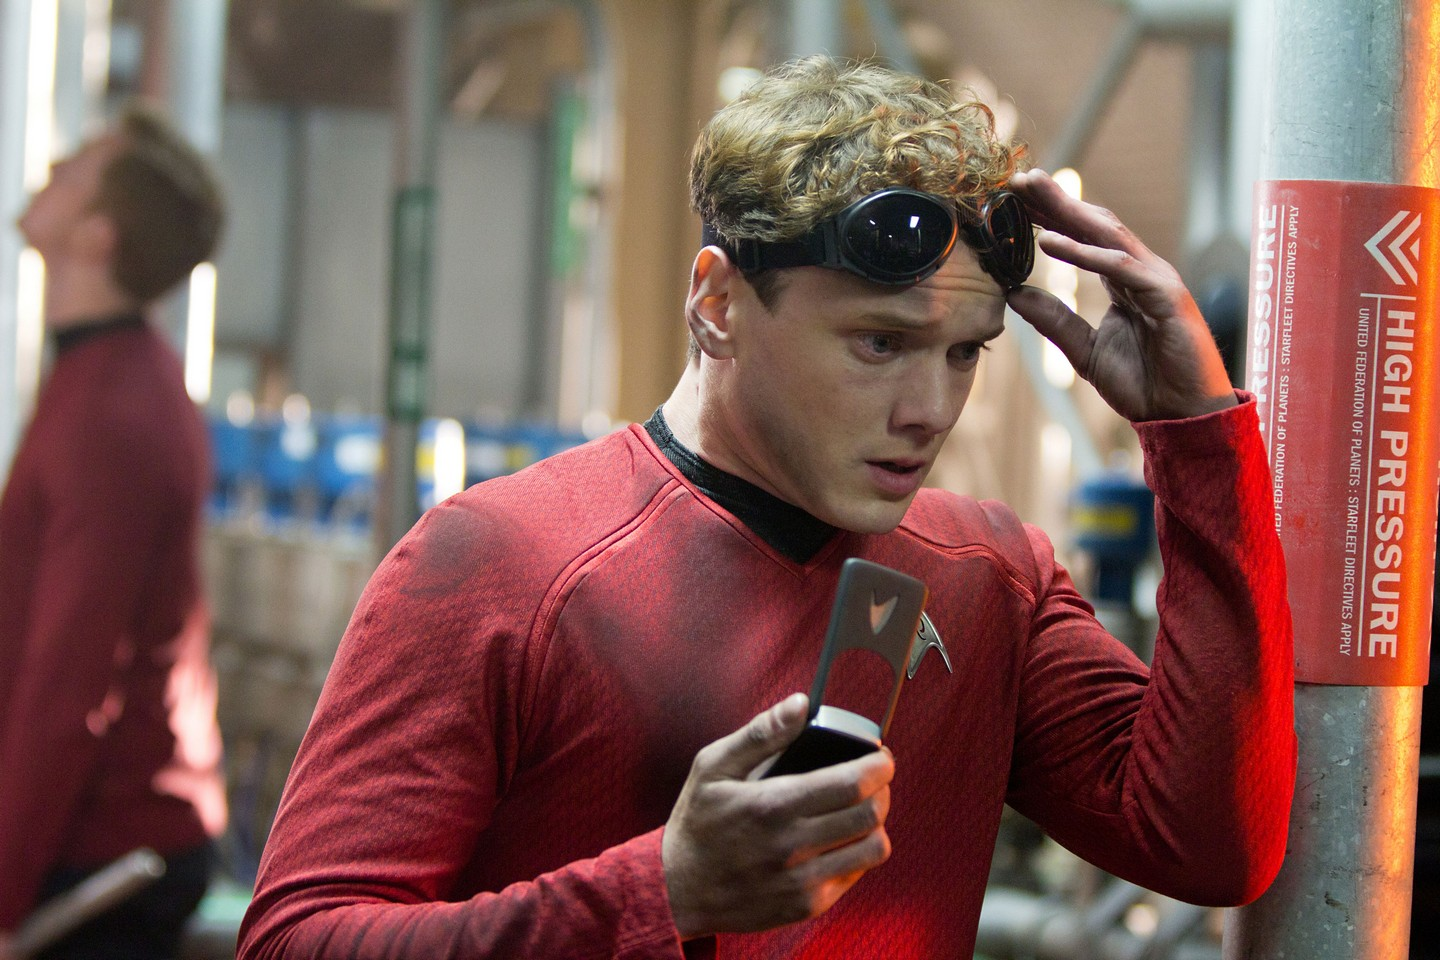 Anton yelchin as Pavel Chekov in Star Trek Into Darkness